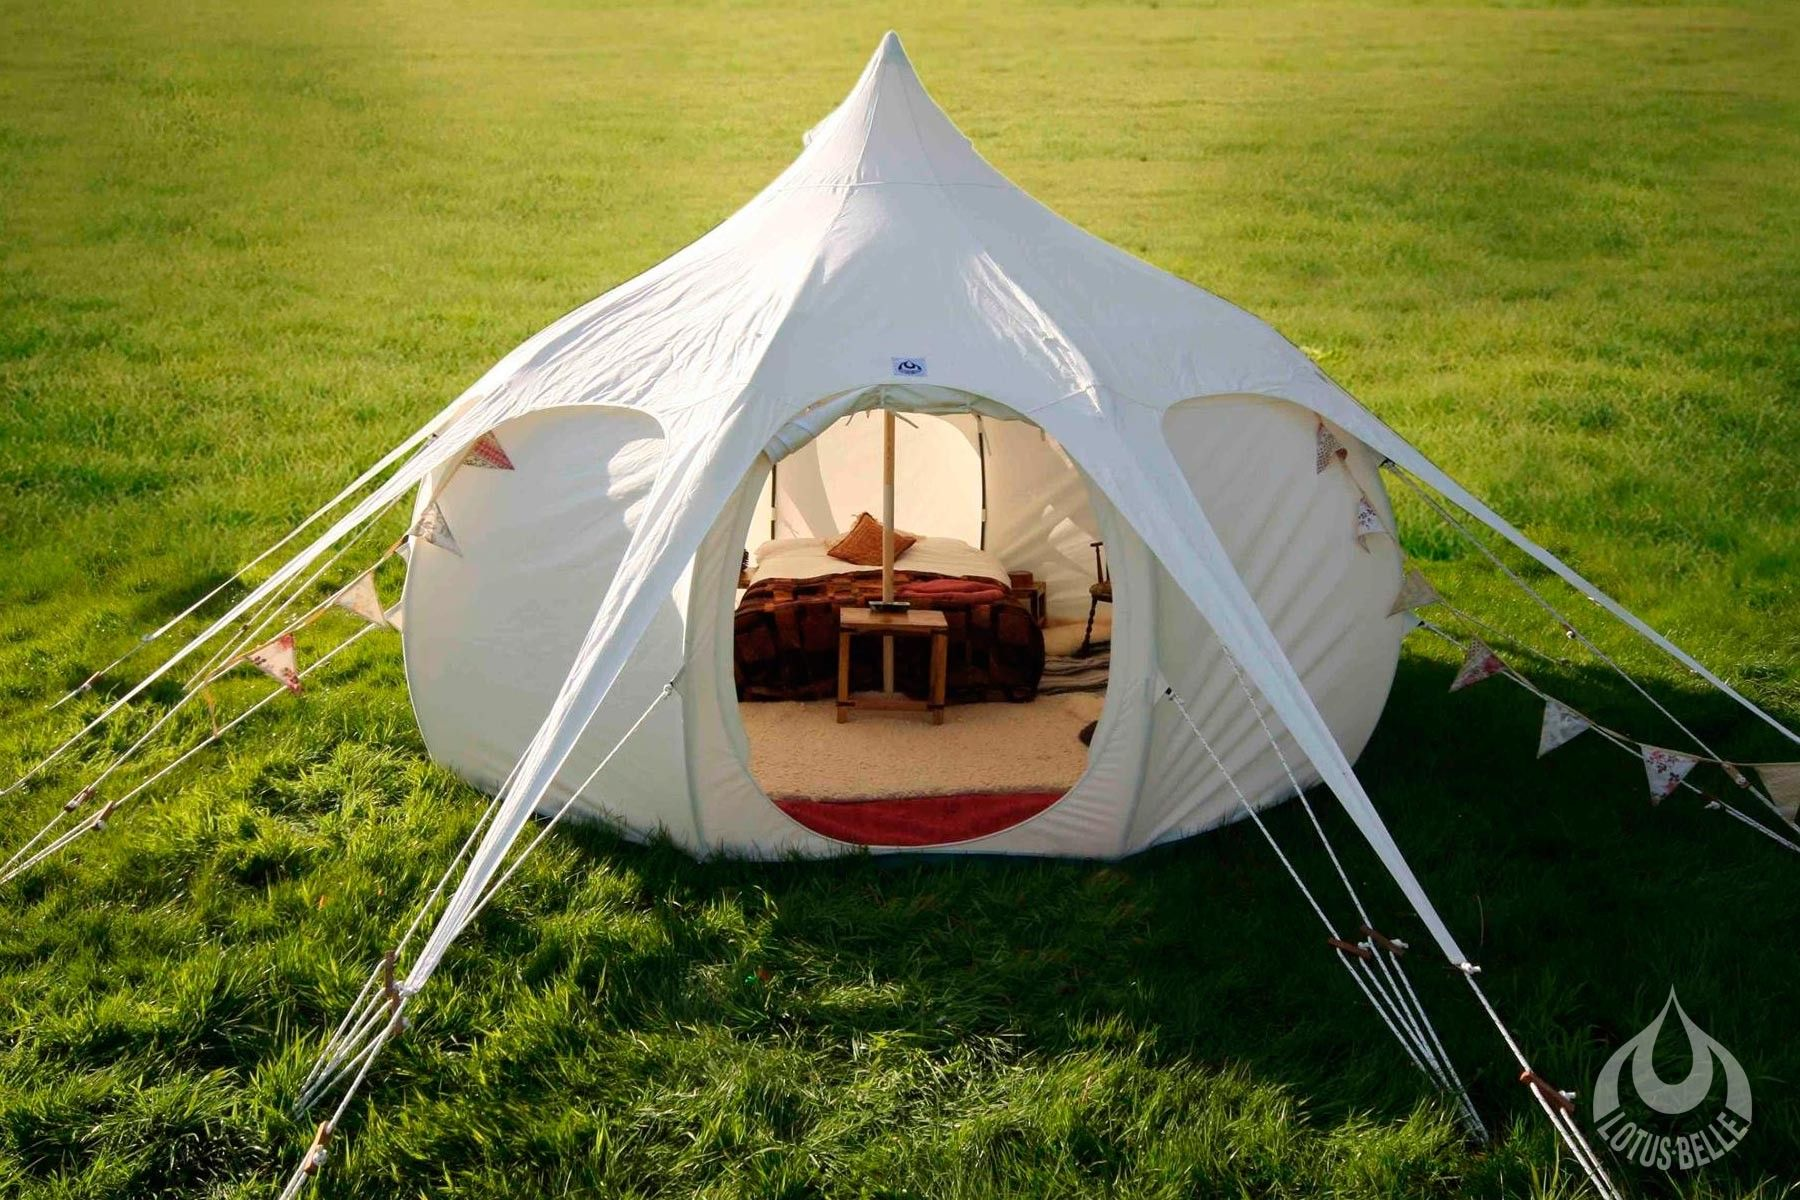 The 4 metre Lotus Belle tent Cream canvas 4 metre diameter at the base metres diameter at waist height 3 metre wooden centre pole PVC see through windows If & Lotus-Belle | Guest Yurt | Cabin | Pinterest | Tents Cabin and eBay